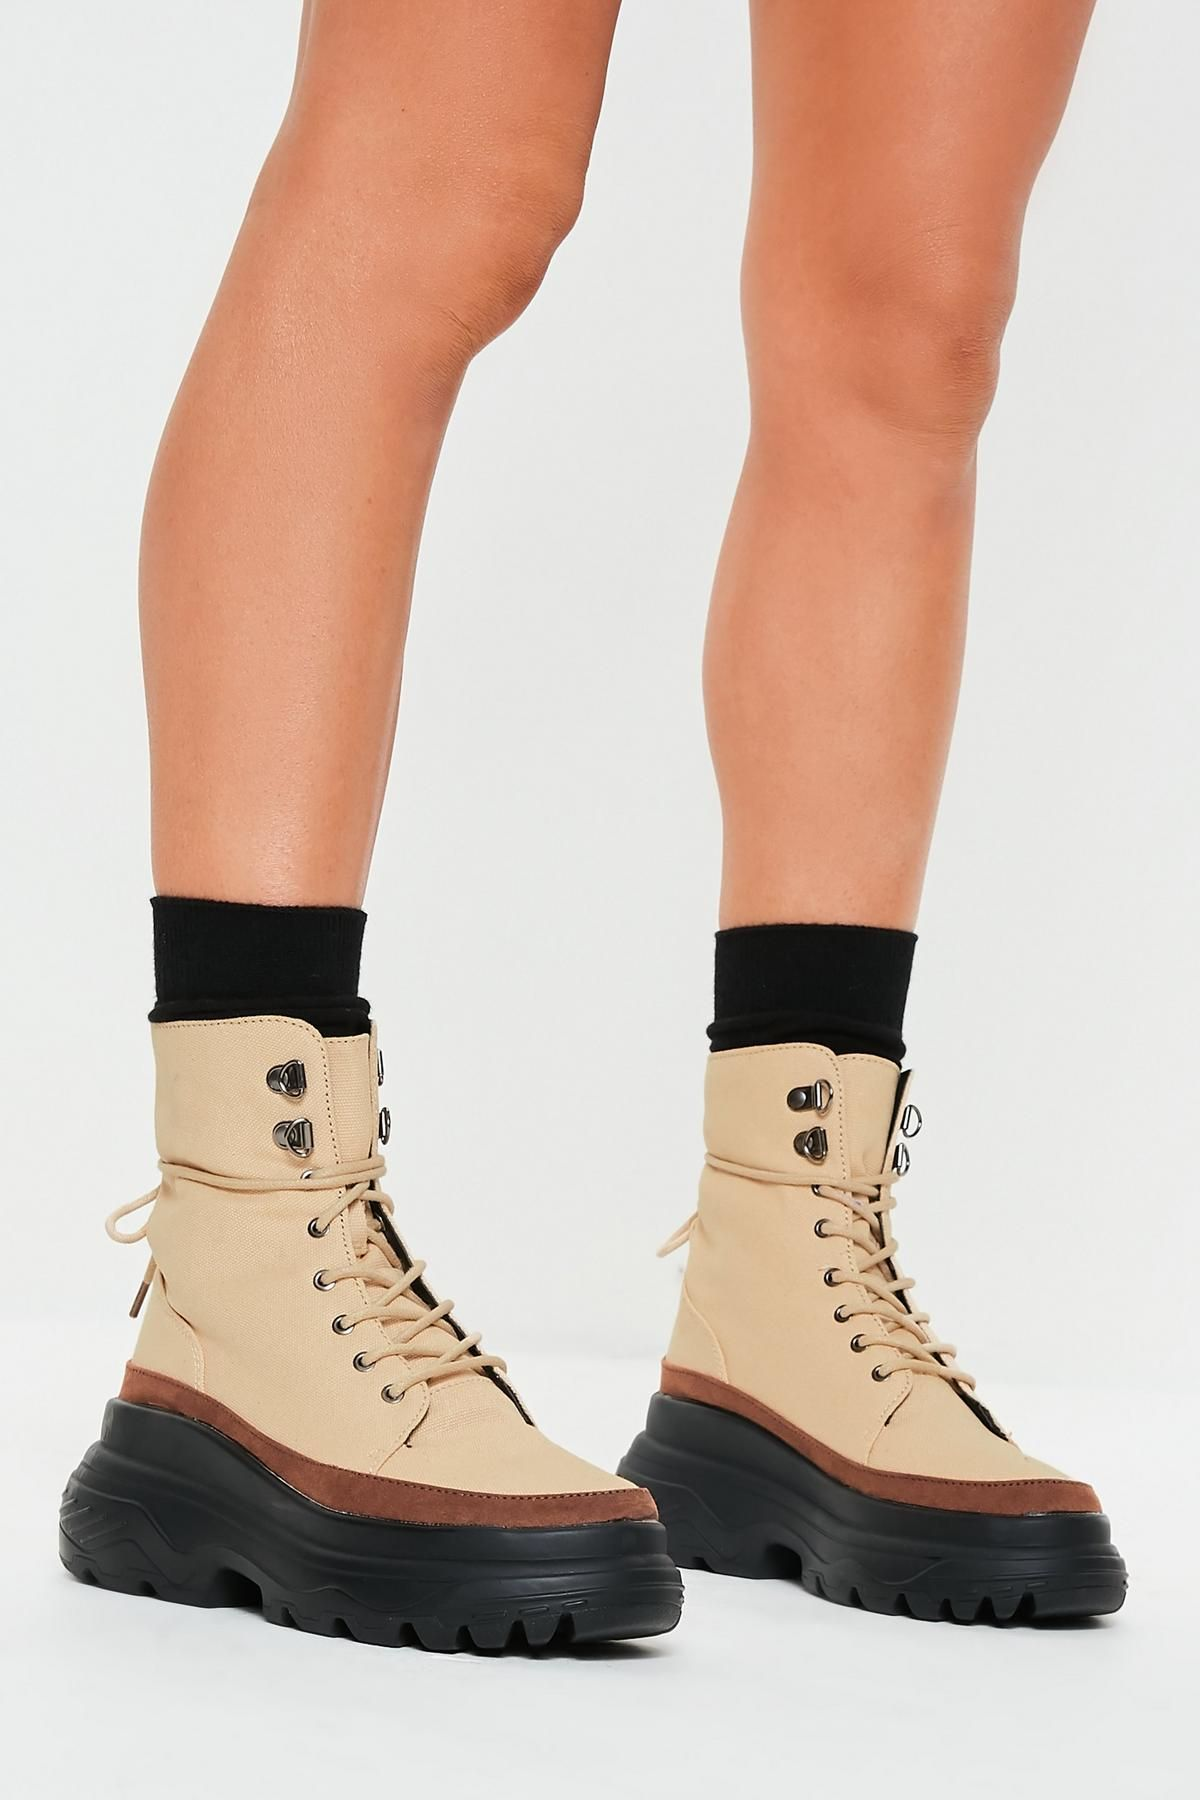 Tan Chunky Sole Canvas Hiking Boots